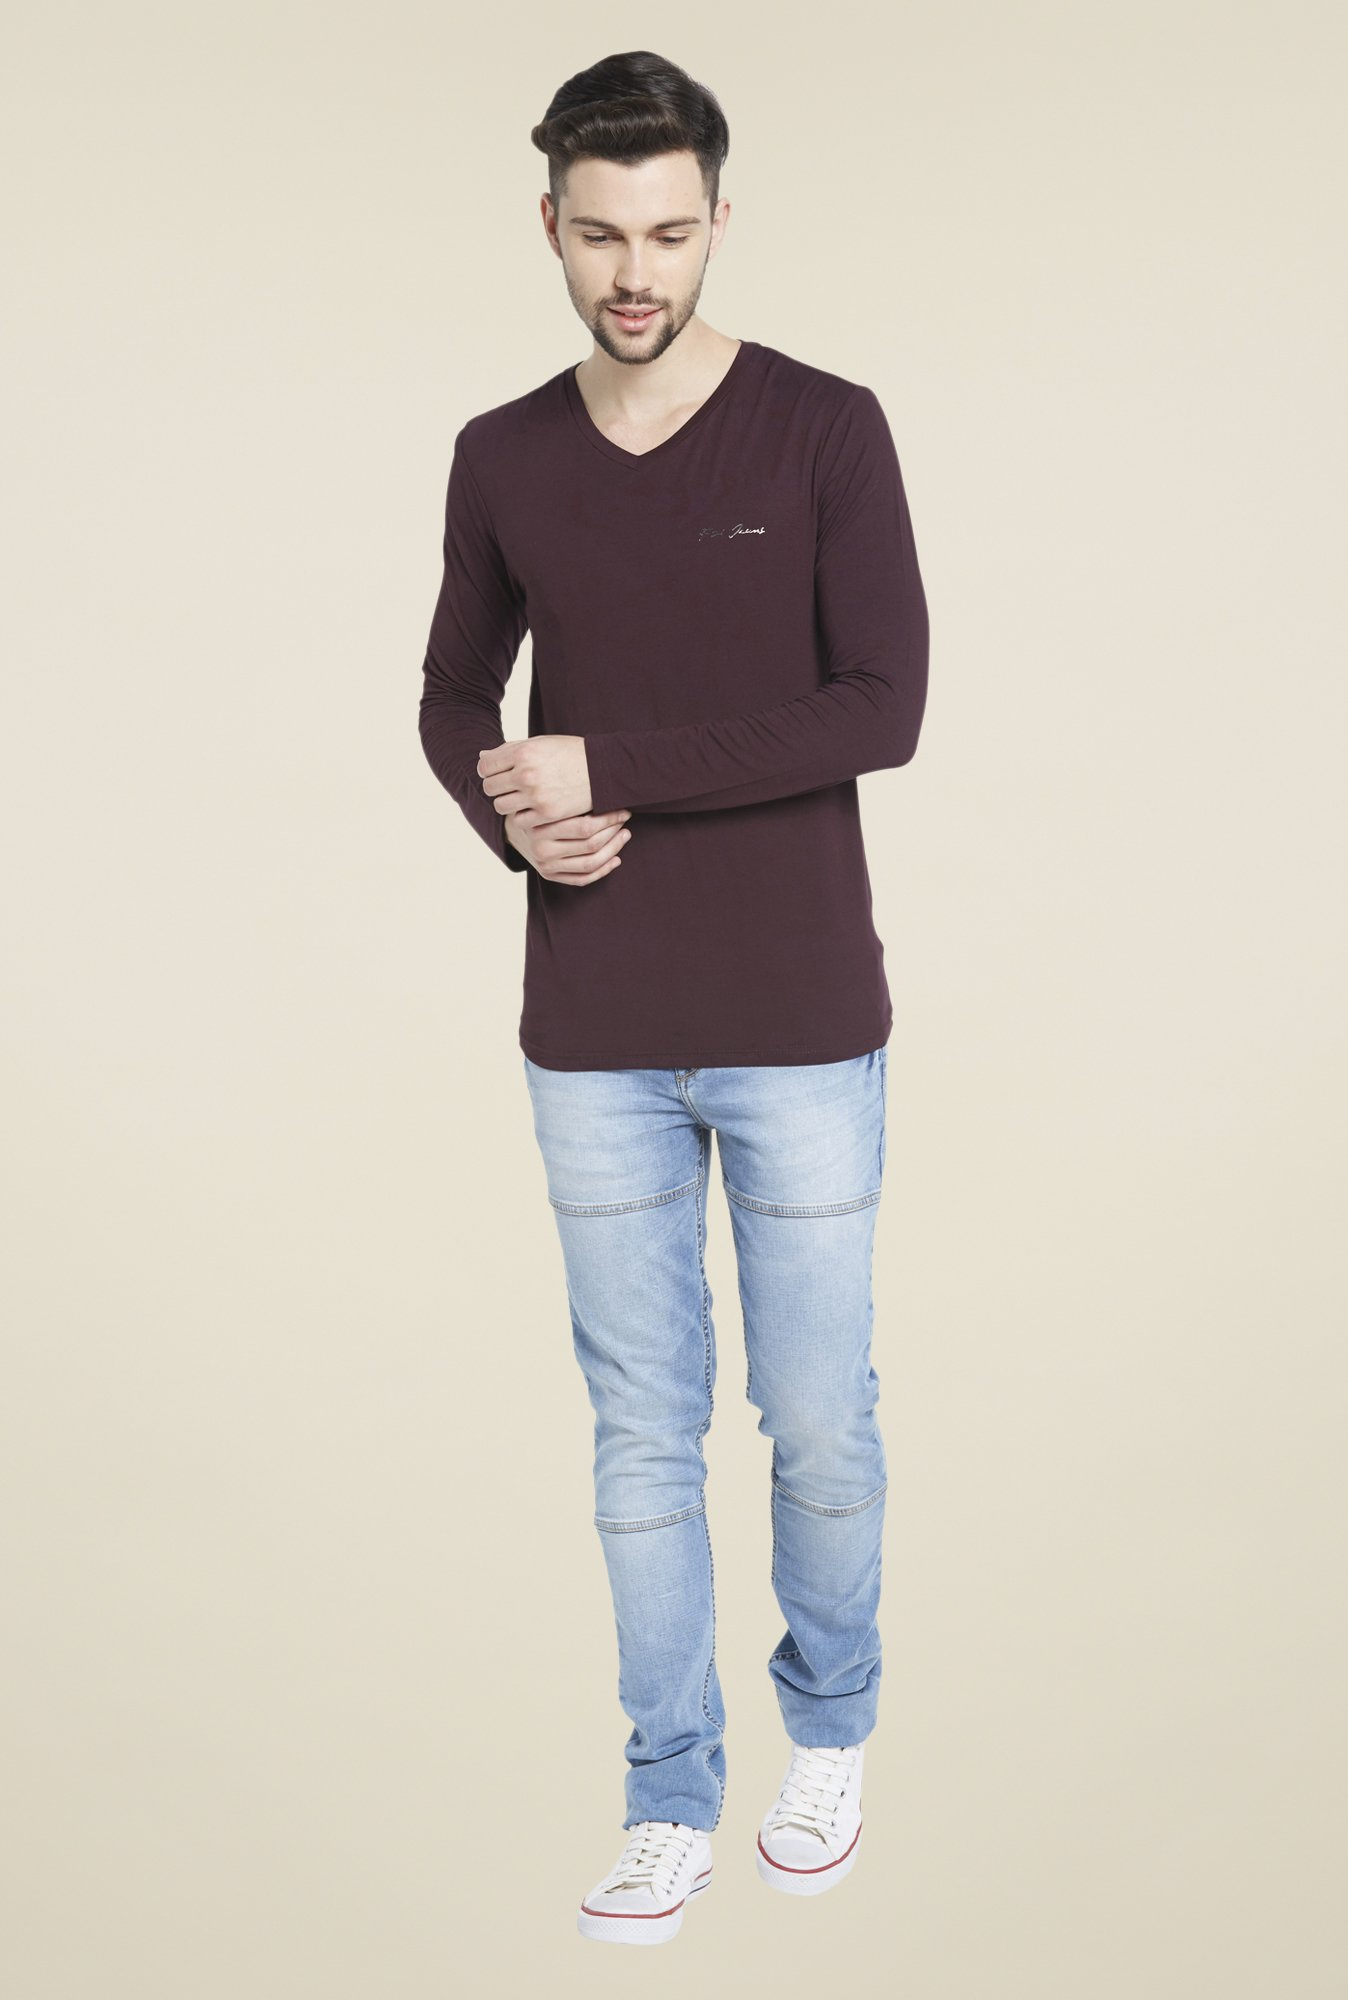 Globus Maroon Full Sleeves V Neck T Shirt